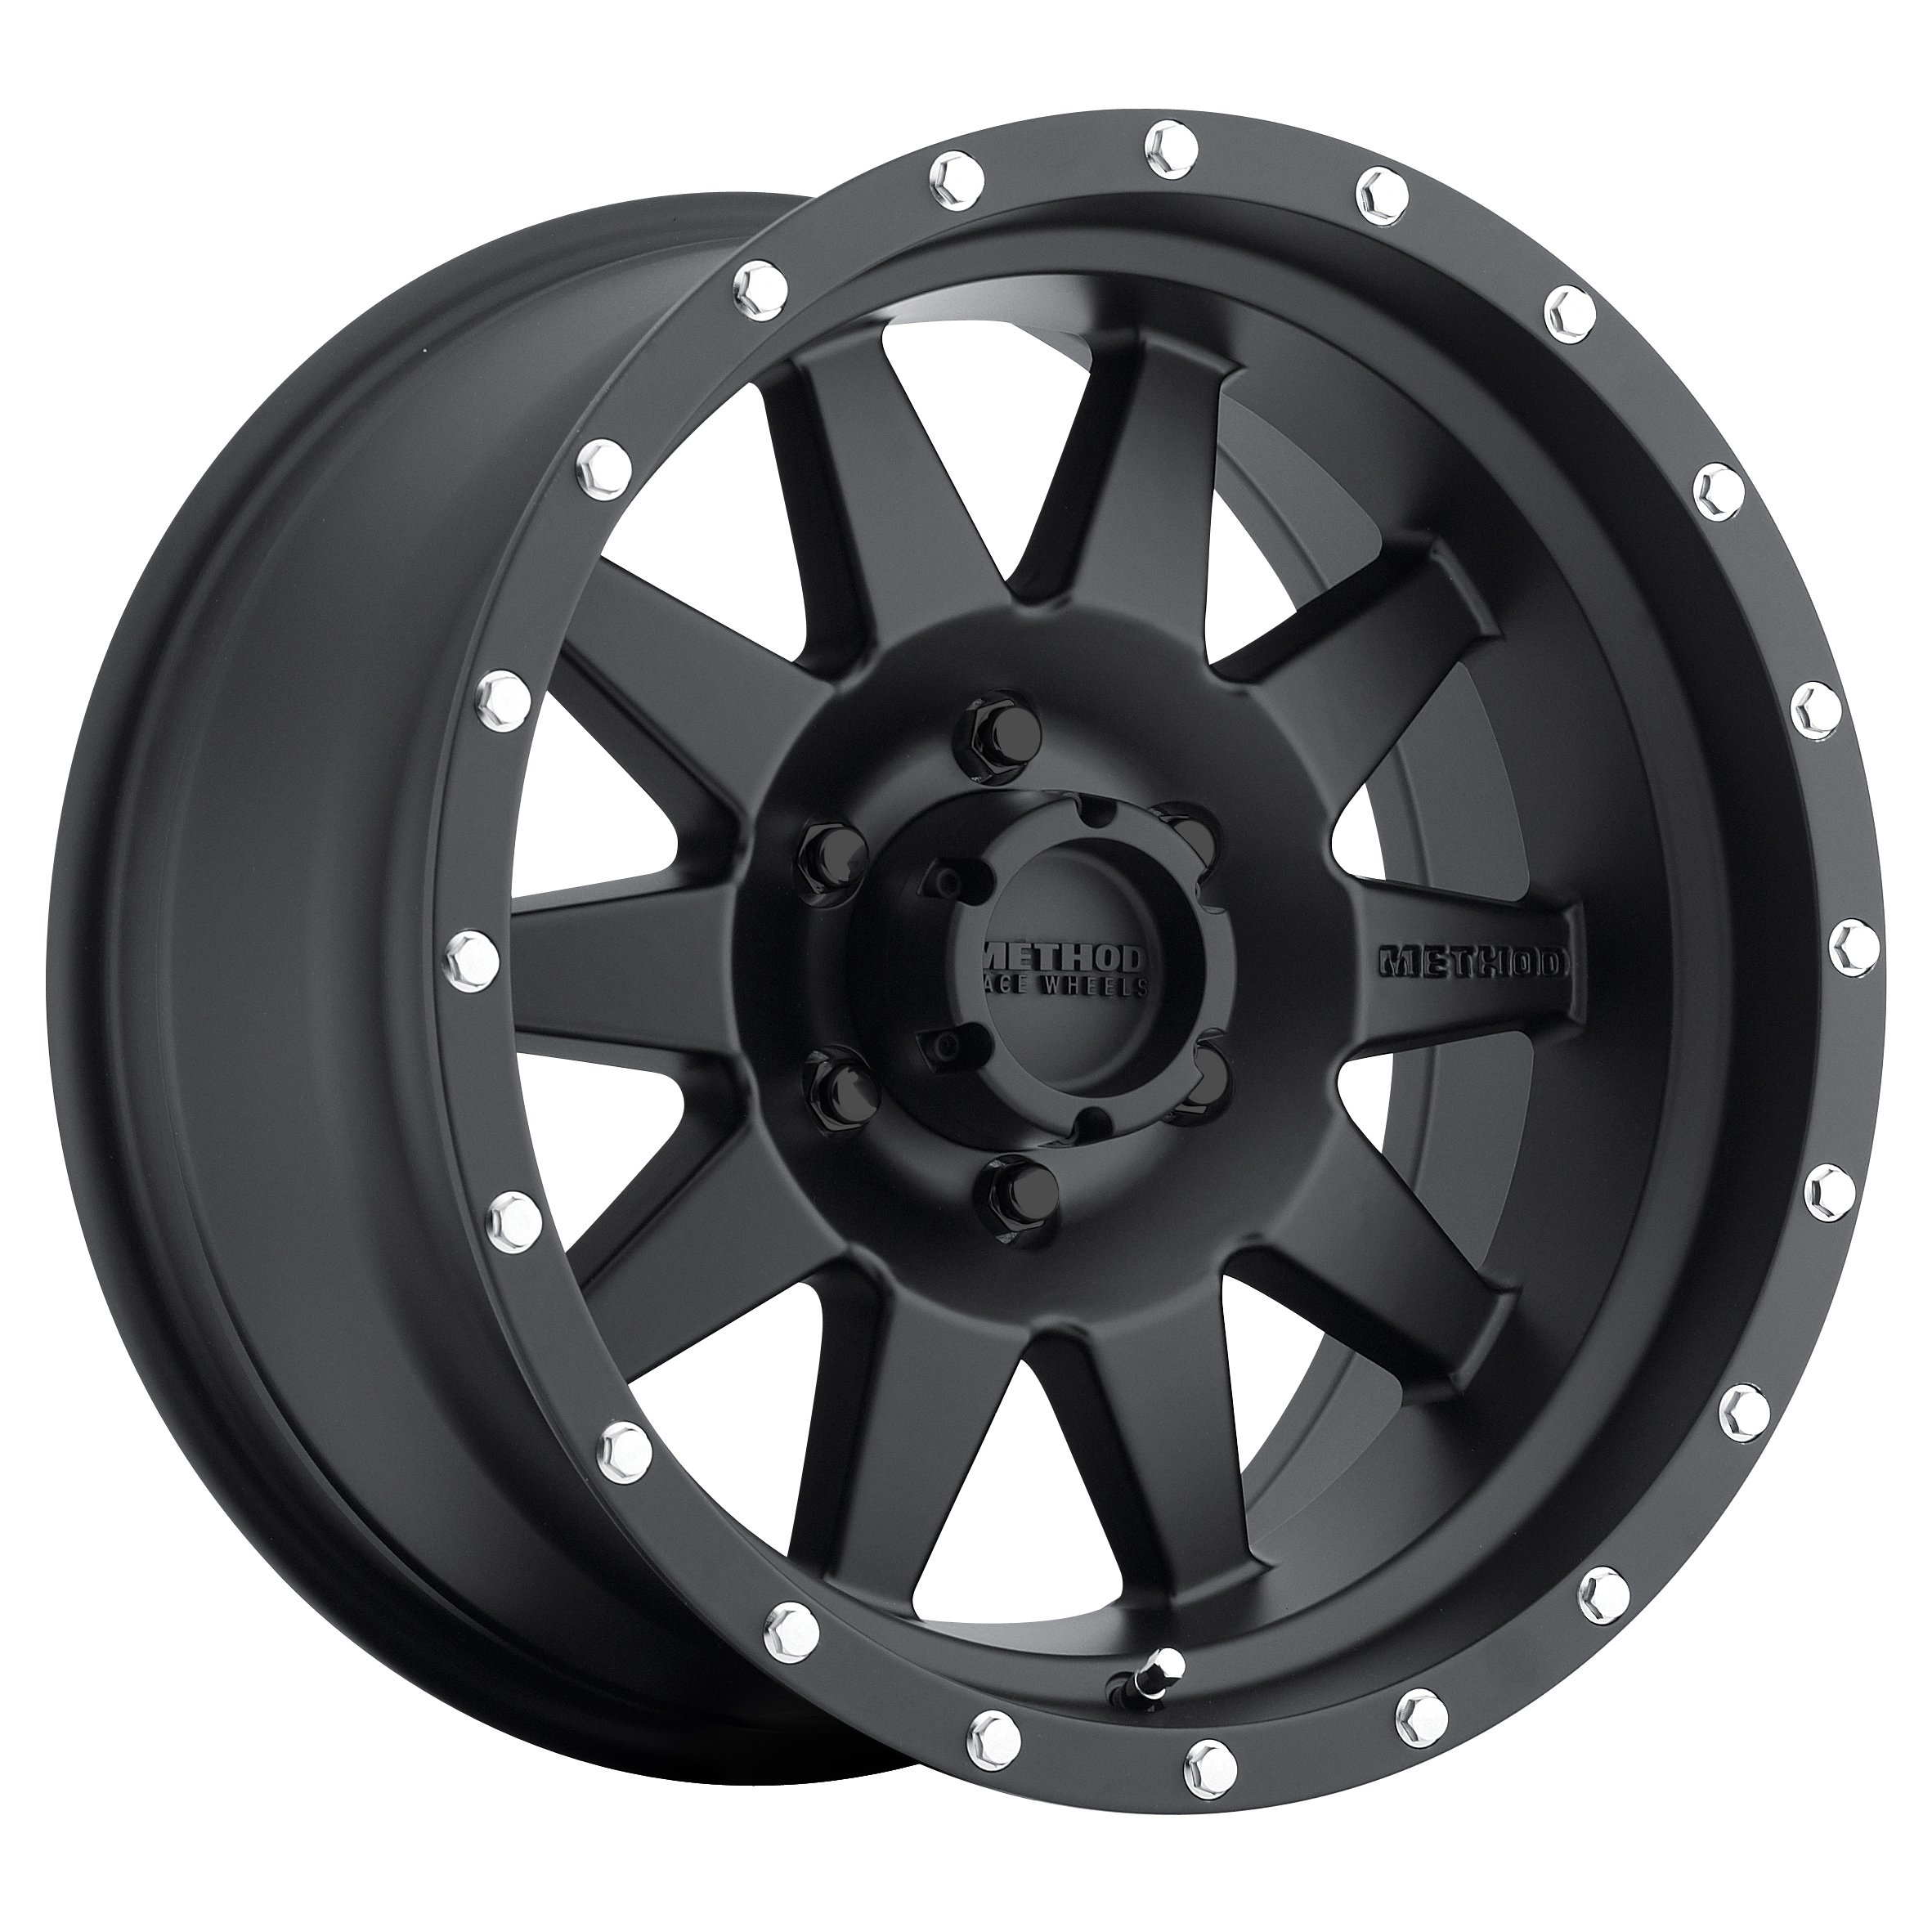 Method Race Wheels The Standard Matte Black Wheel with Stainless Steel Accent Bolts (17x7.5''/5x160mm) 50 mm offset